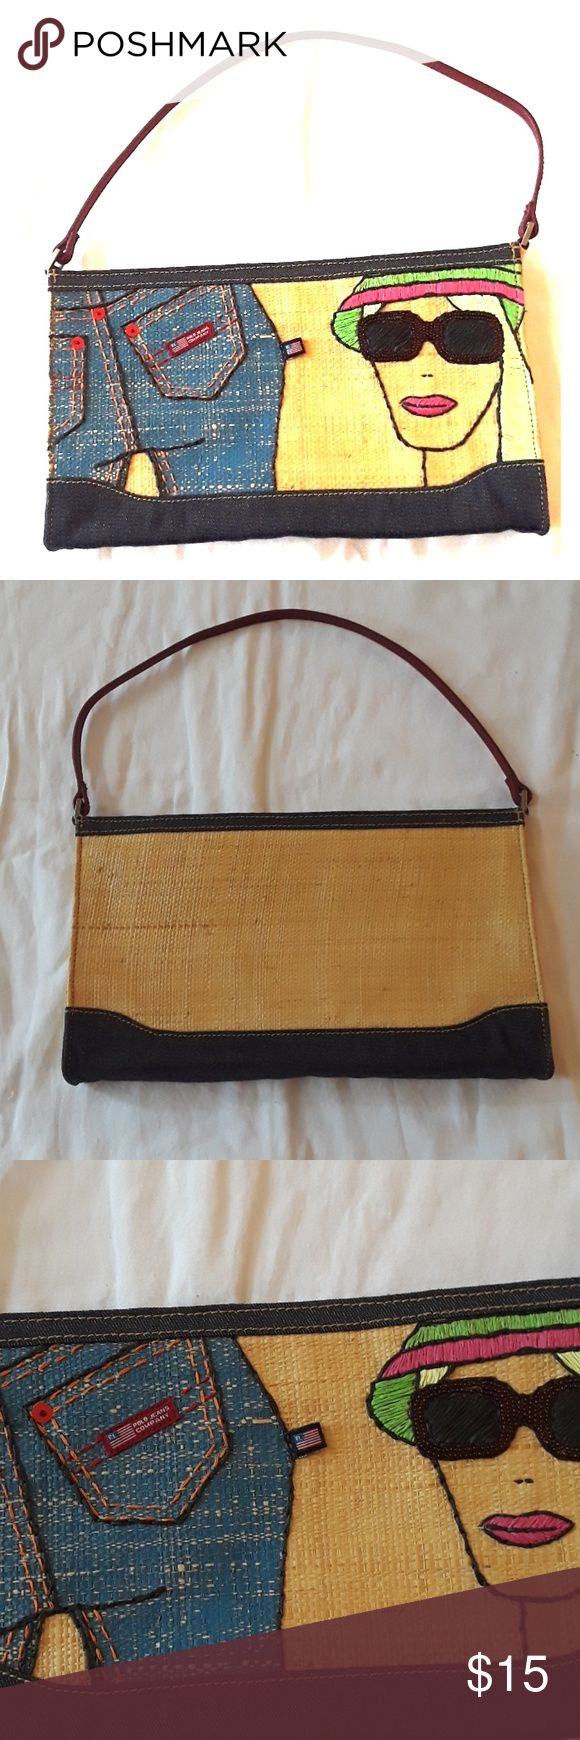 Polo Jeans Company Purse Polo Jeans Company Purse, used condition,  inside is clean,  no spots on lining. Really cool style purse, very summery purse. MEASUREMENTS ARE IN PICTURES, ASK QUESTIONS AS ALL SALES ARE FINAL, HAPPY POSHING. Polo Jeans Company Bags